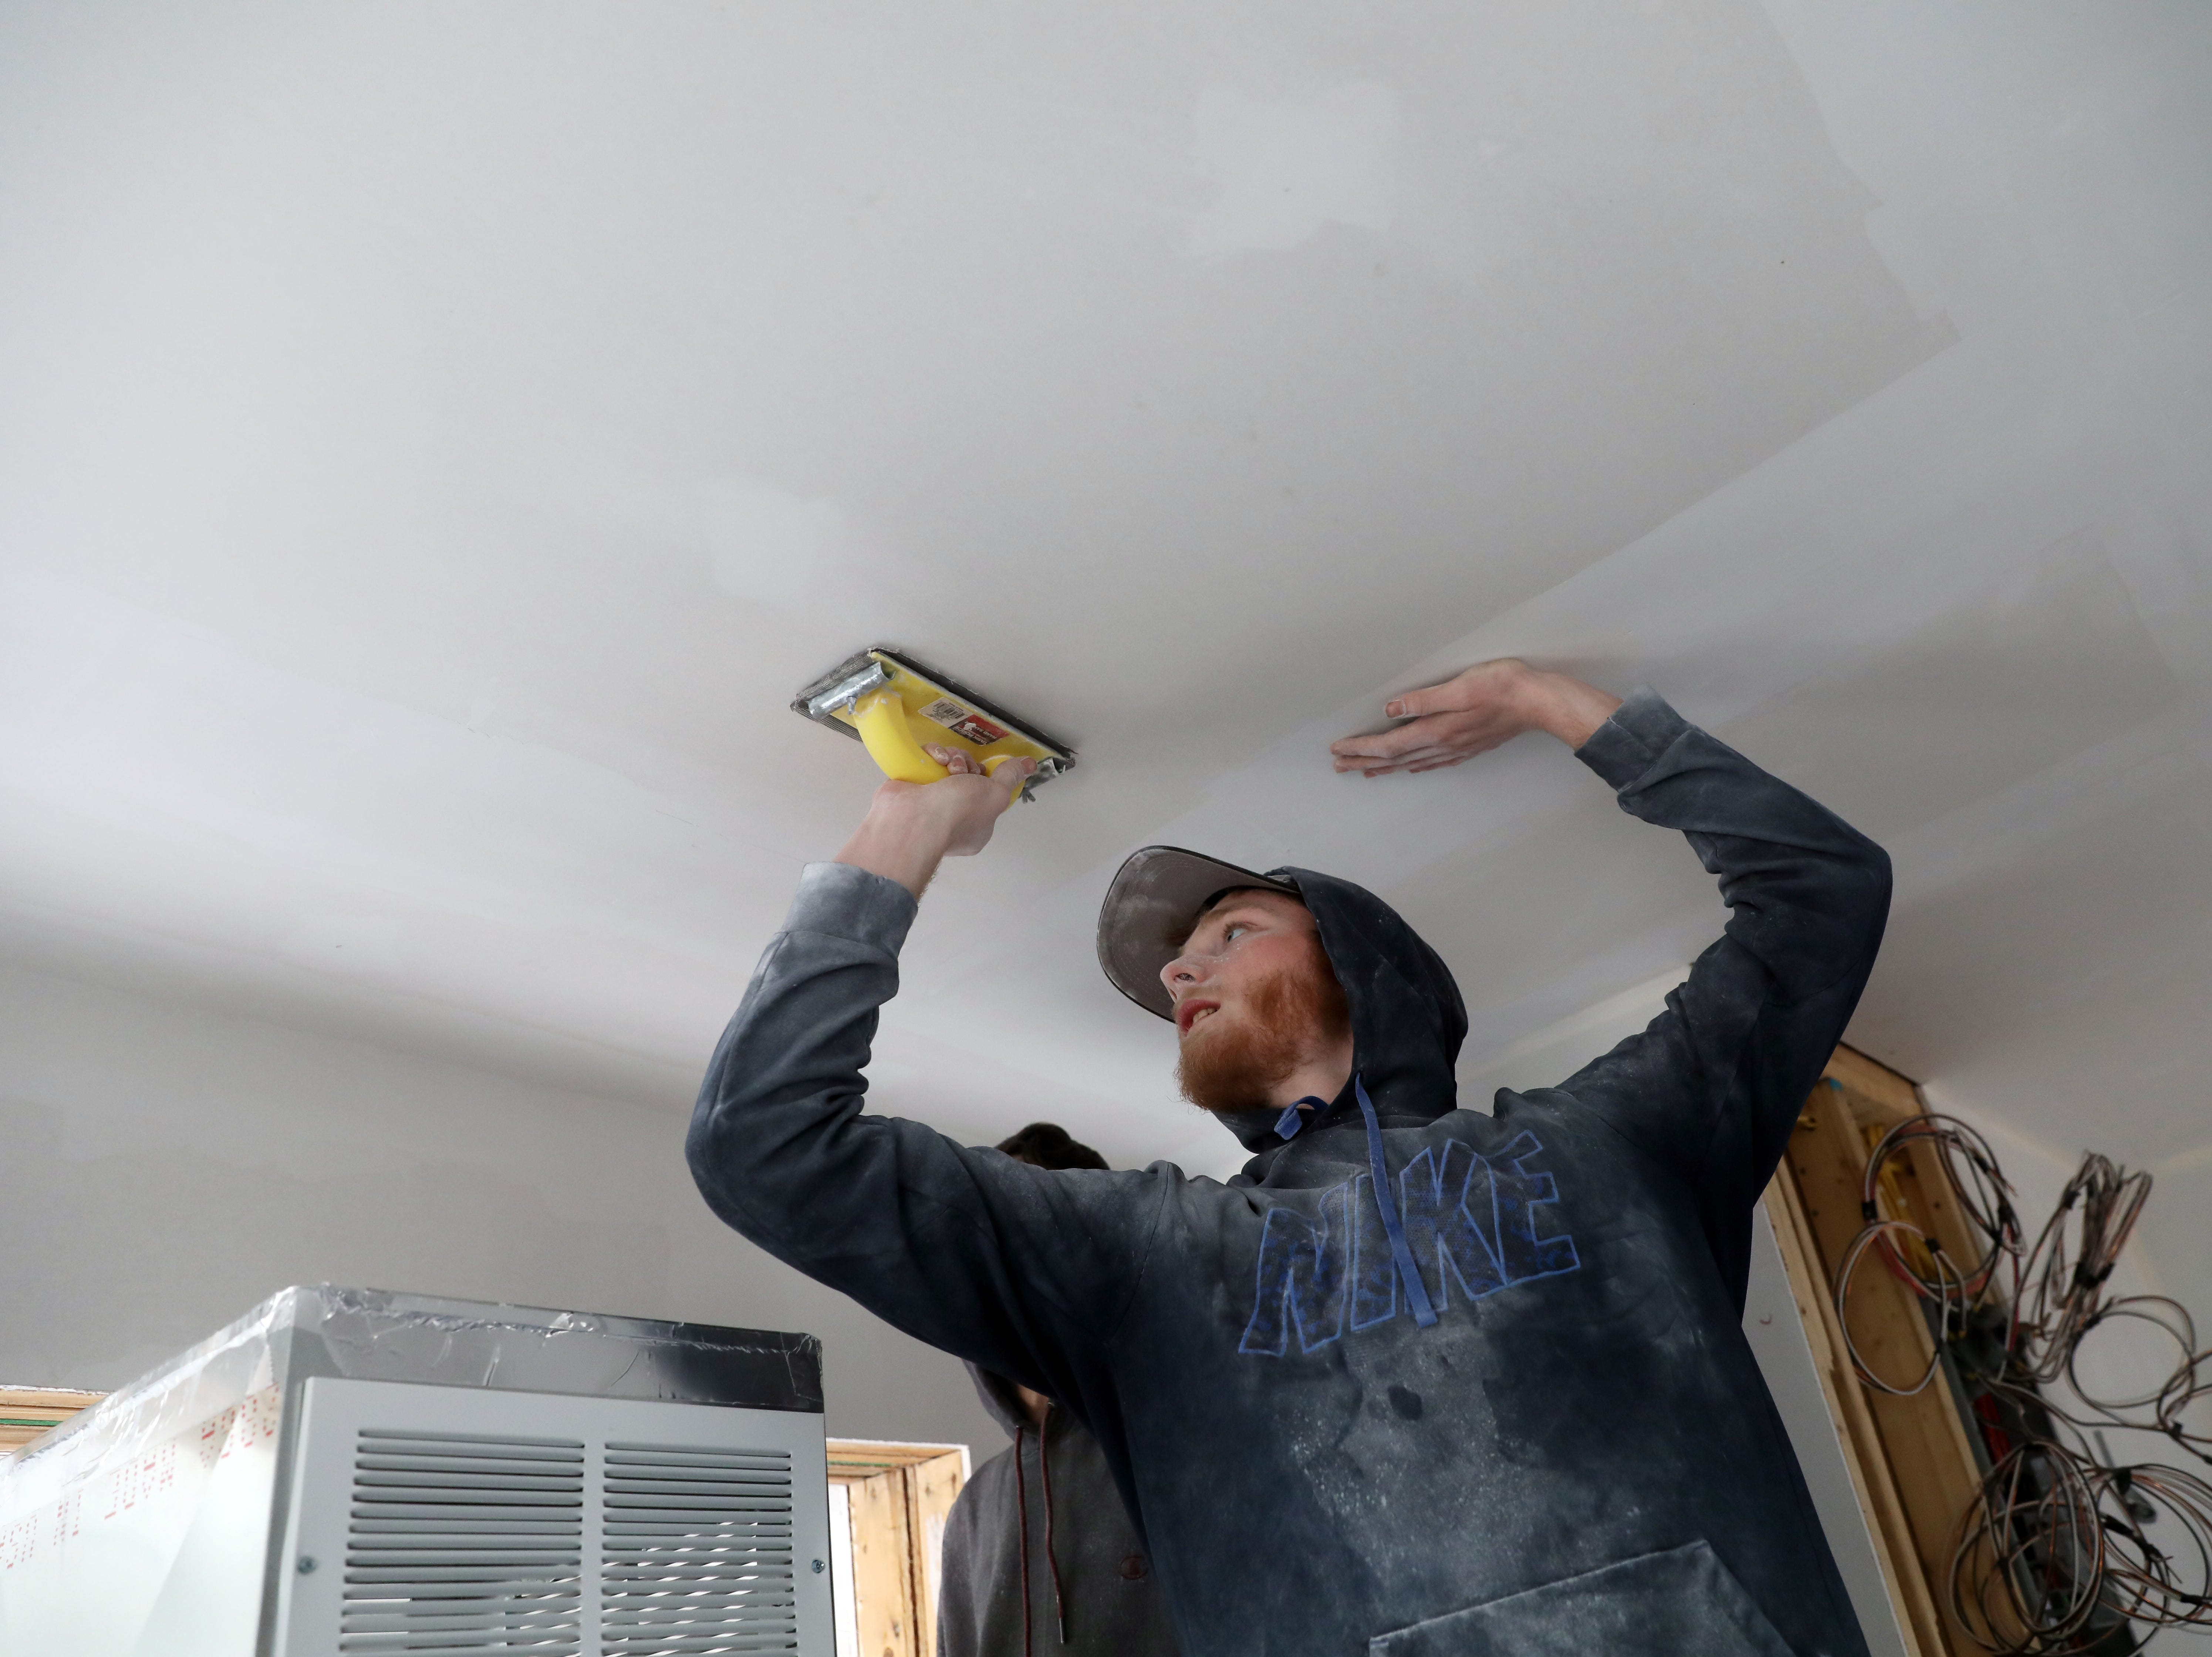 Todd Hina, a Mid-East student from Zanesville Community High School, works on drywall in a house the carpentry program Mid-East Career and Technology Center is building for Habitat for Humanity.